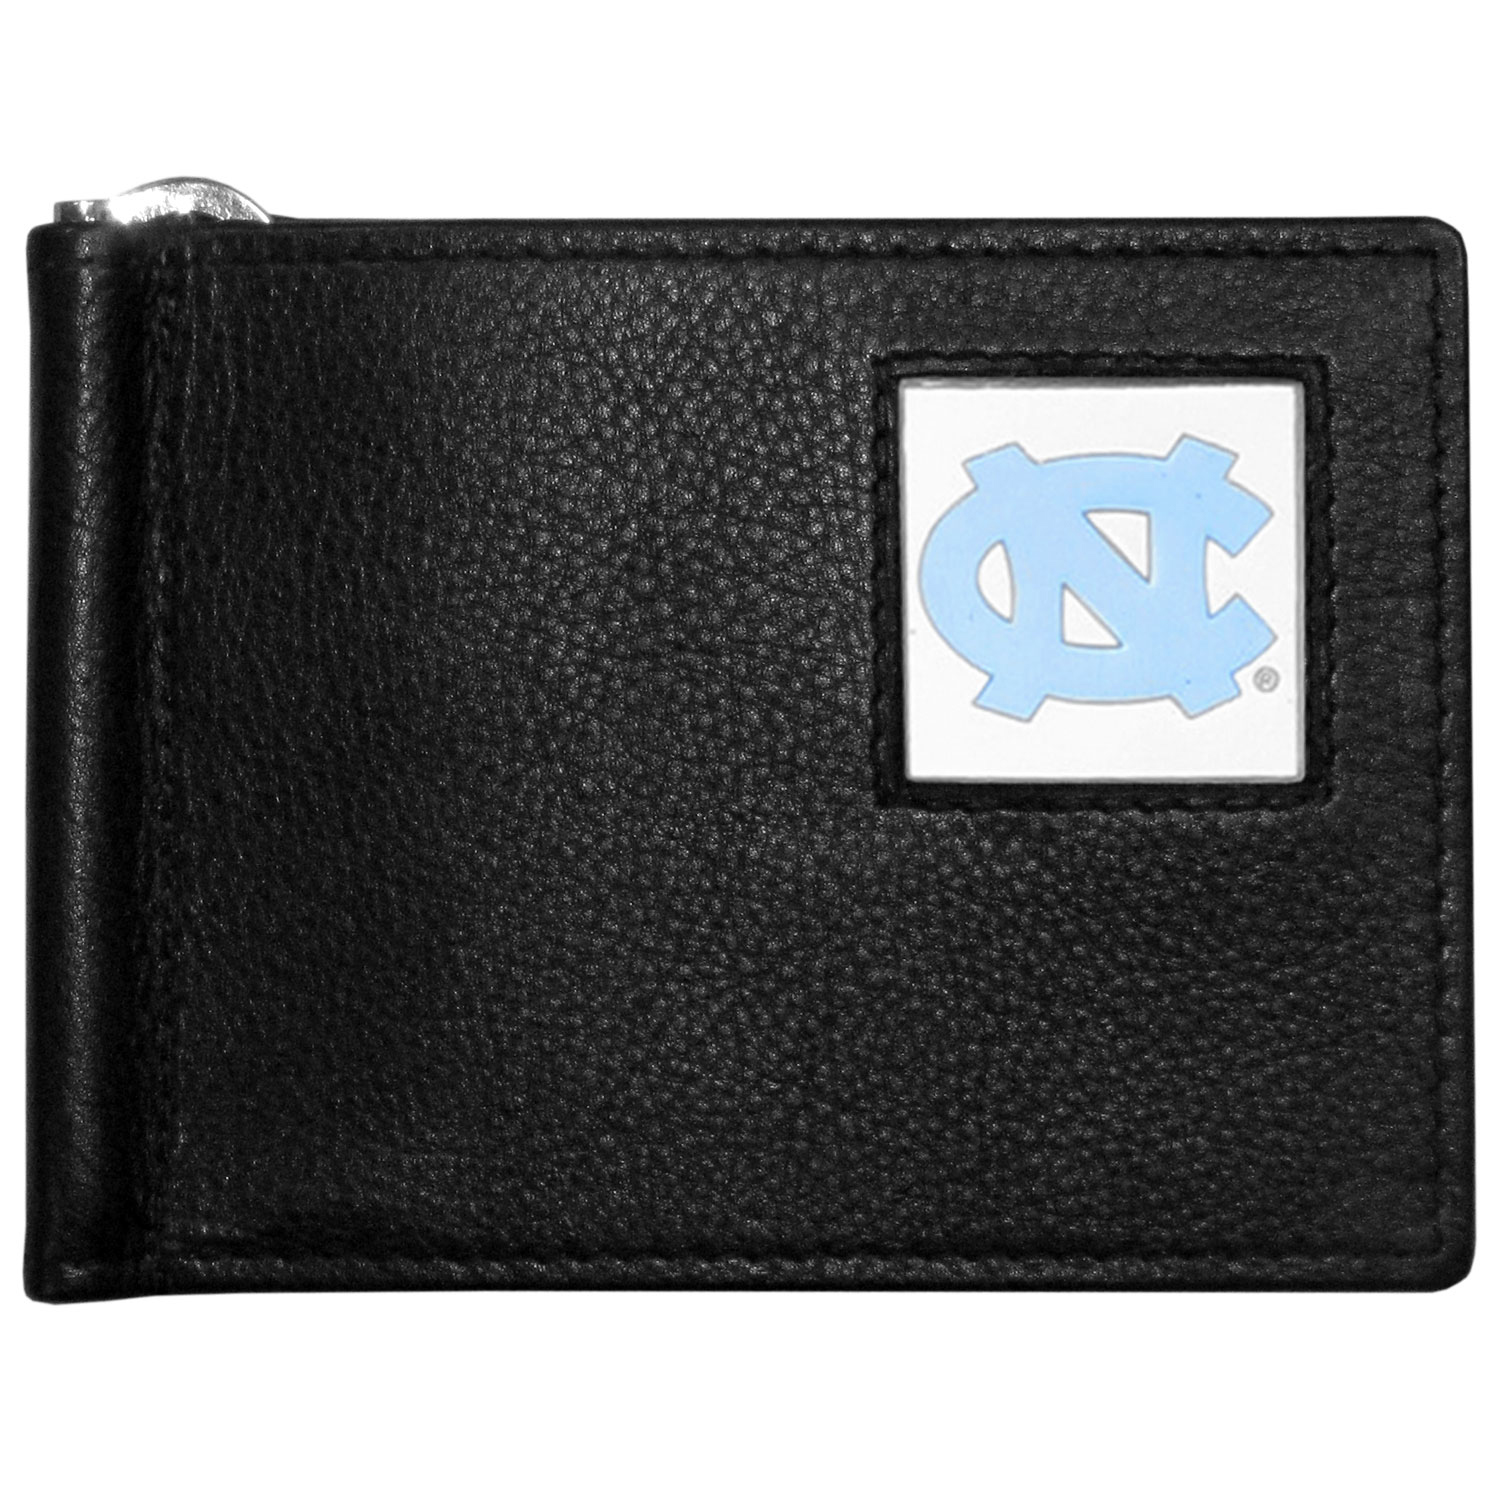 N. Carolina Tar Heels Leather Bill Clip Wallet - This cool new style wallet features an inner, metal bill clip that lips up for easy access. The super slim wallet holds tons of stuff with ample pockets, credit card slots & windowed ID slot. The wallet is made of genuine fine grain leather and it finished with a metal N. Carolina Tar Heels emblem. The wallet is shipped in gift box packaging.